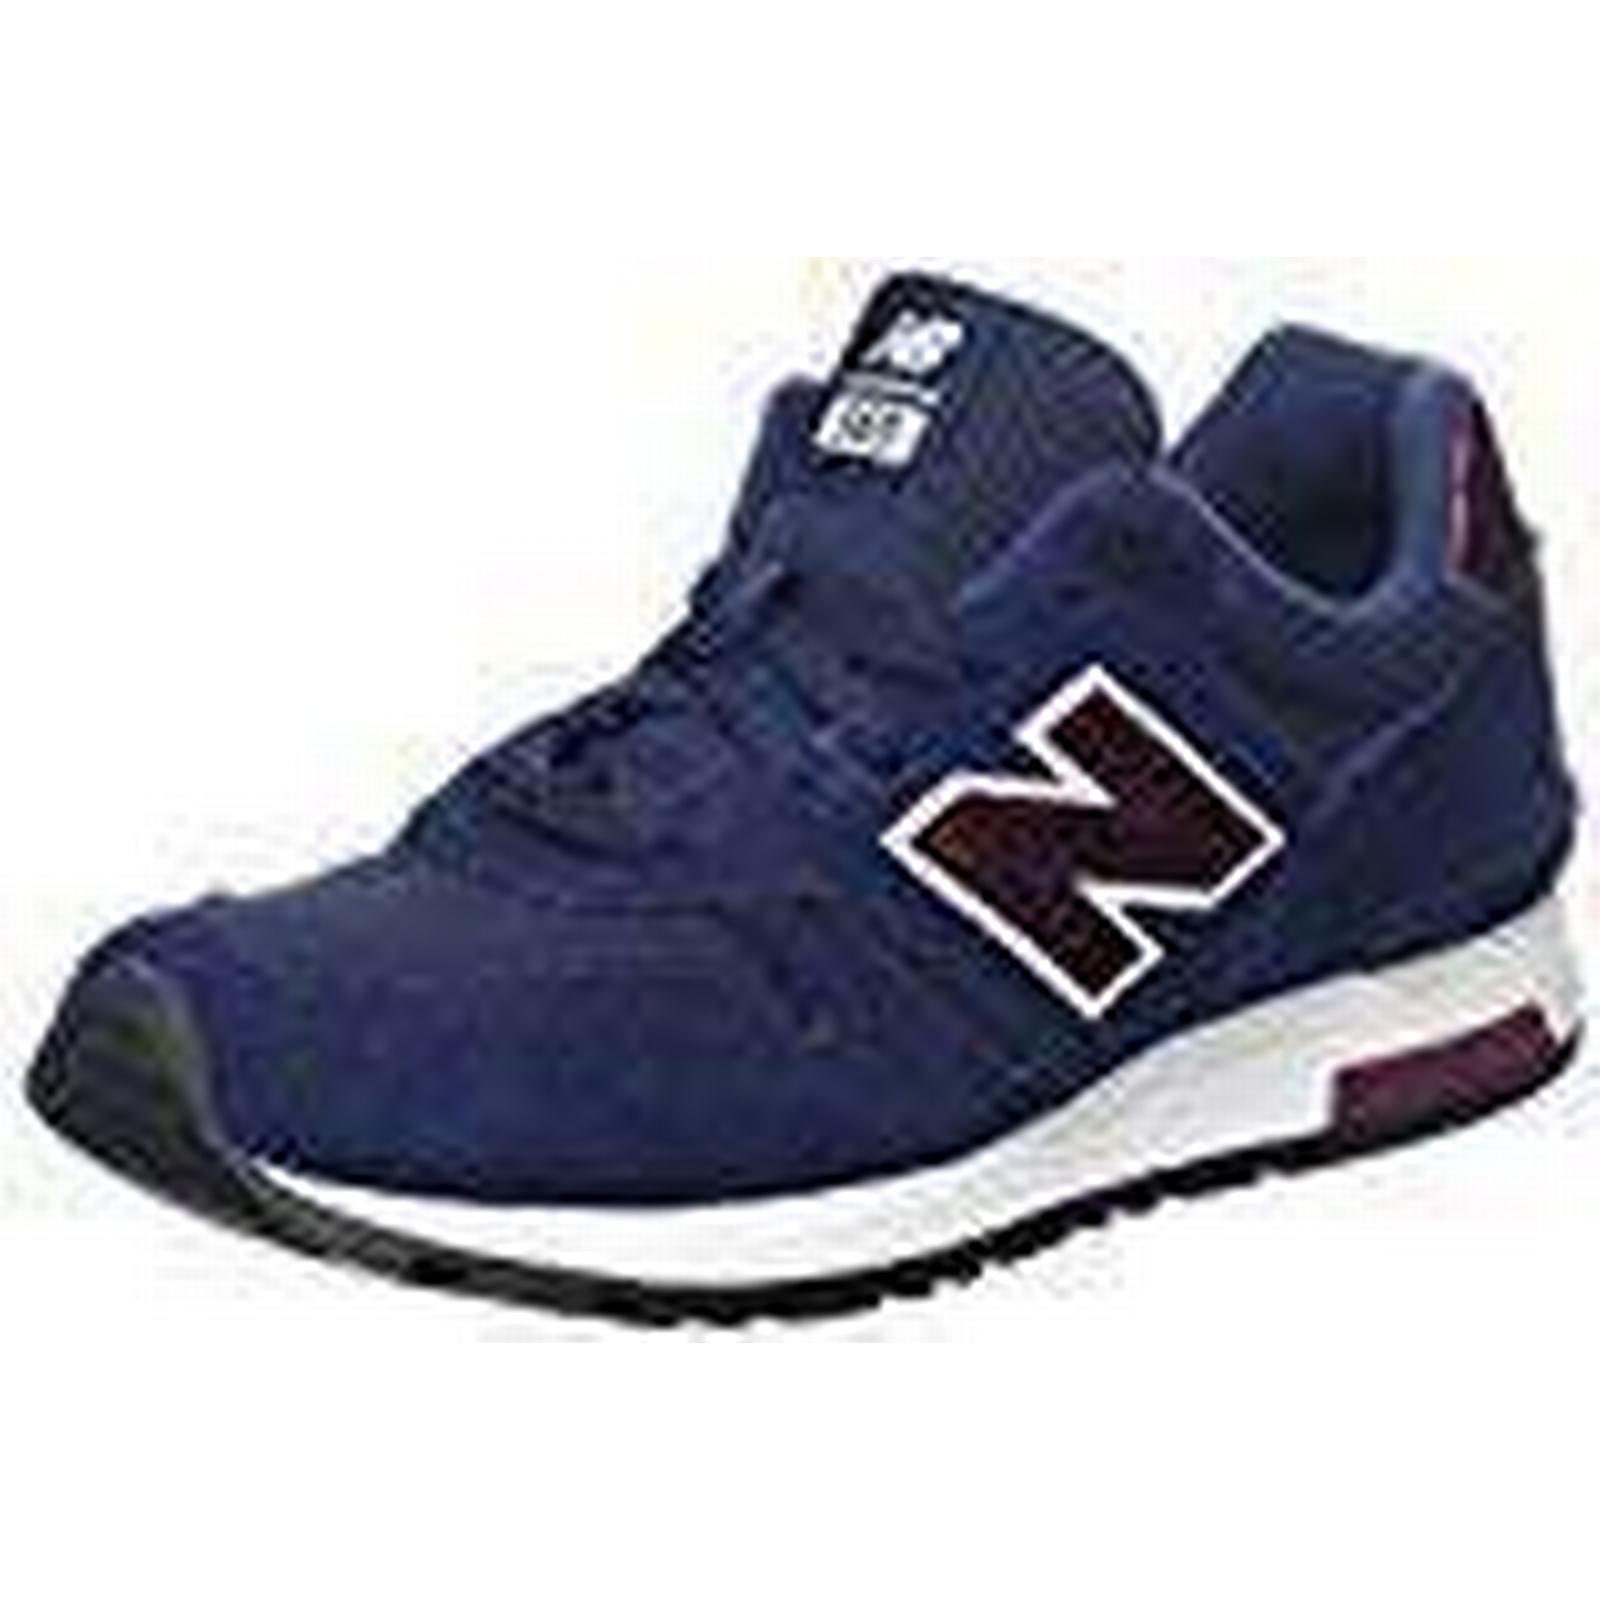 New Balance Women's WL565V1 40 Trainers, Blue (Navy), 6.5 UK 40 WL565V1 EU a5c213